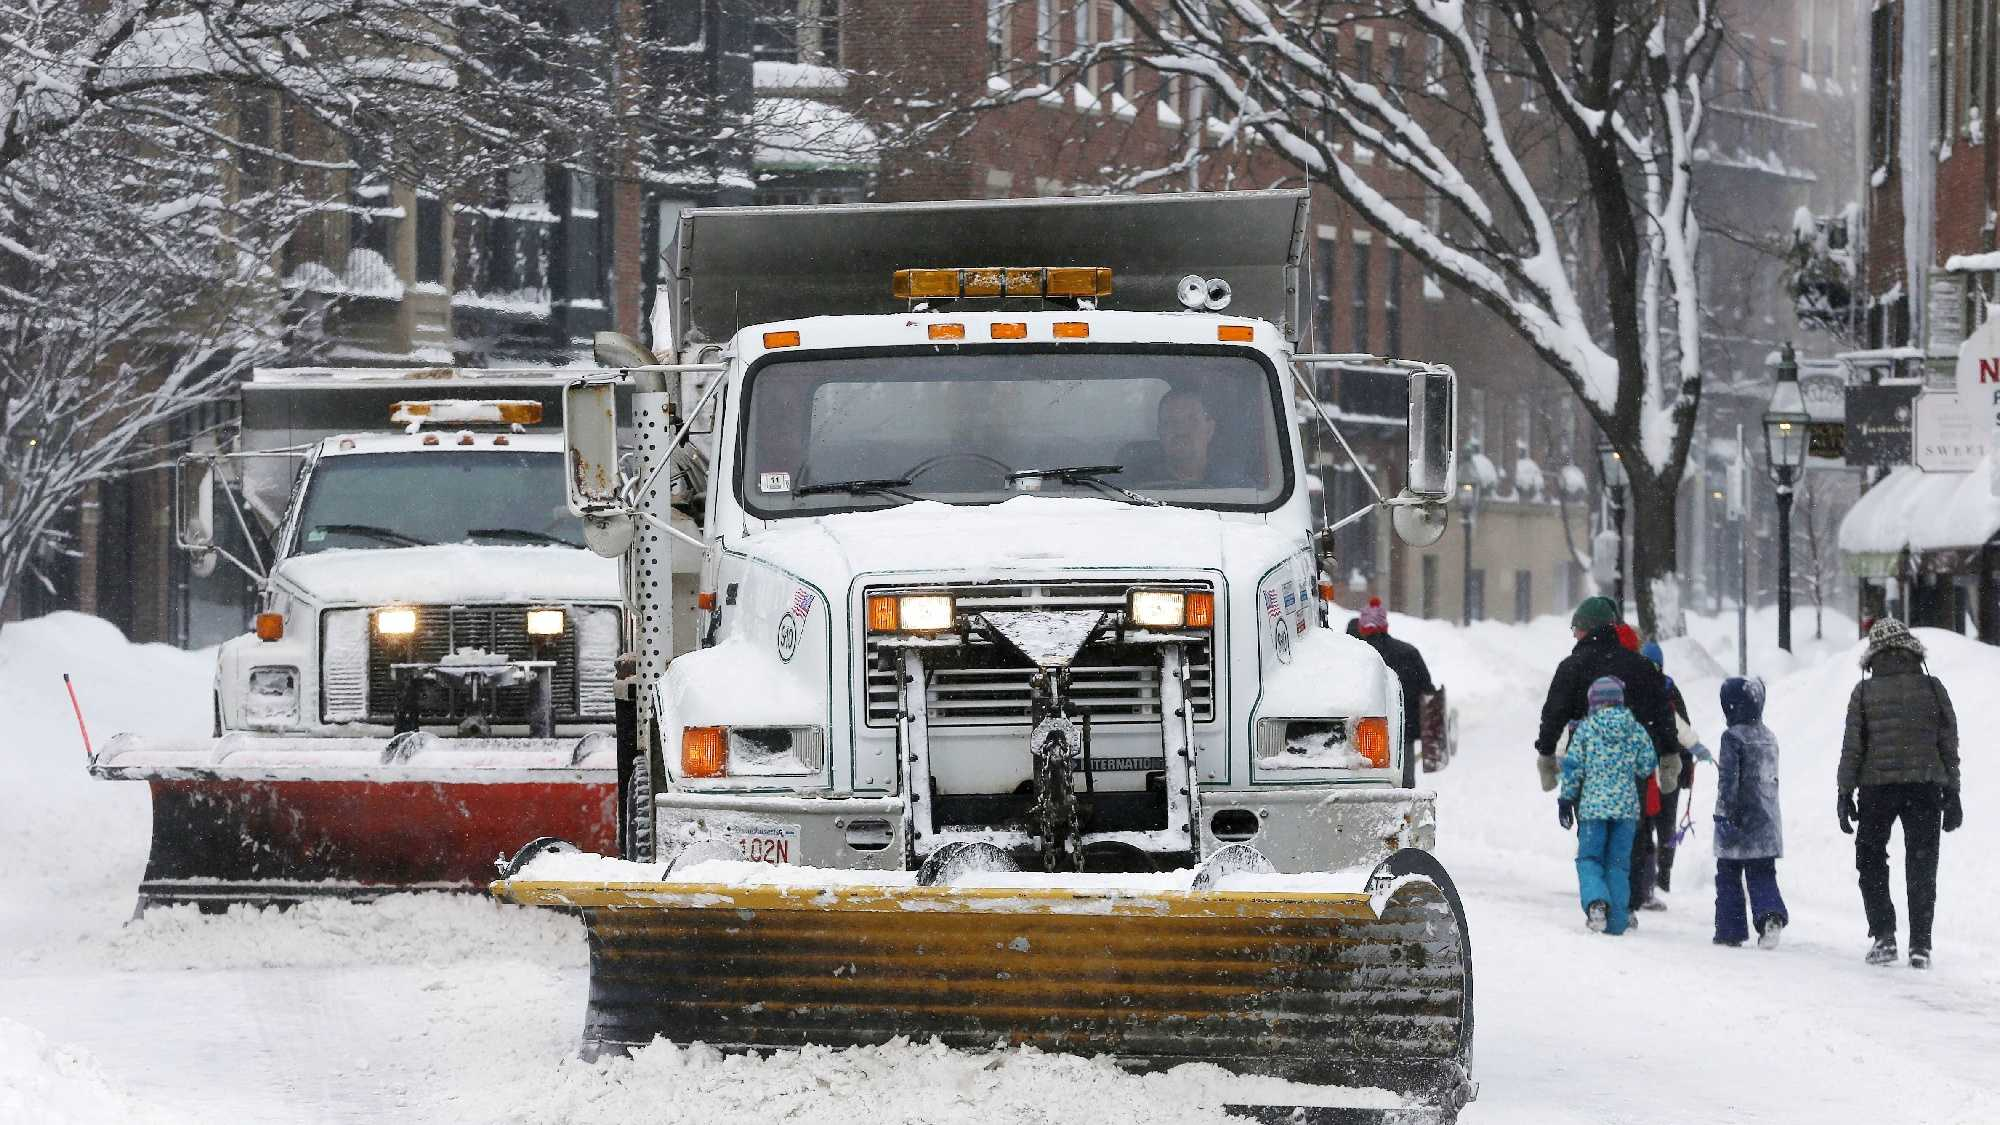 Plows clear Charles Street in Boston, Sunday, Feb. 15, 2015. A blizzard warning was in effect for coastal communities from Rhode Island to Maine, promising heavy snow and powerful winds to heap more misery on a region that has already seen more than 6 feet of snow in some areas.